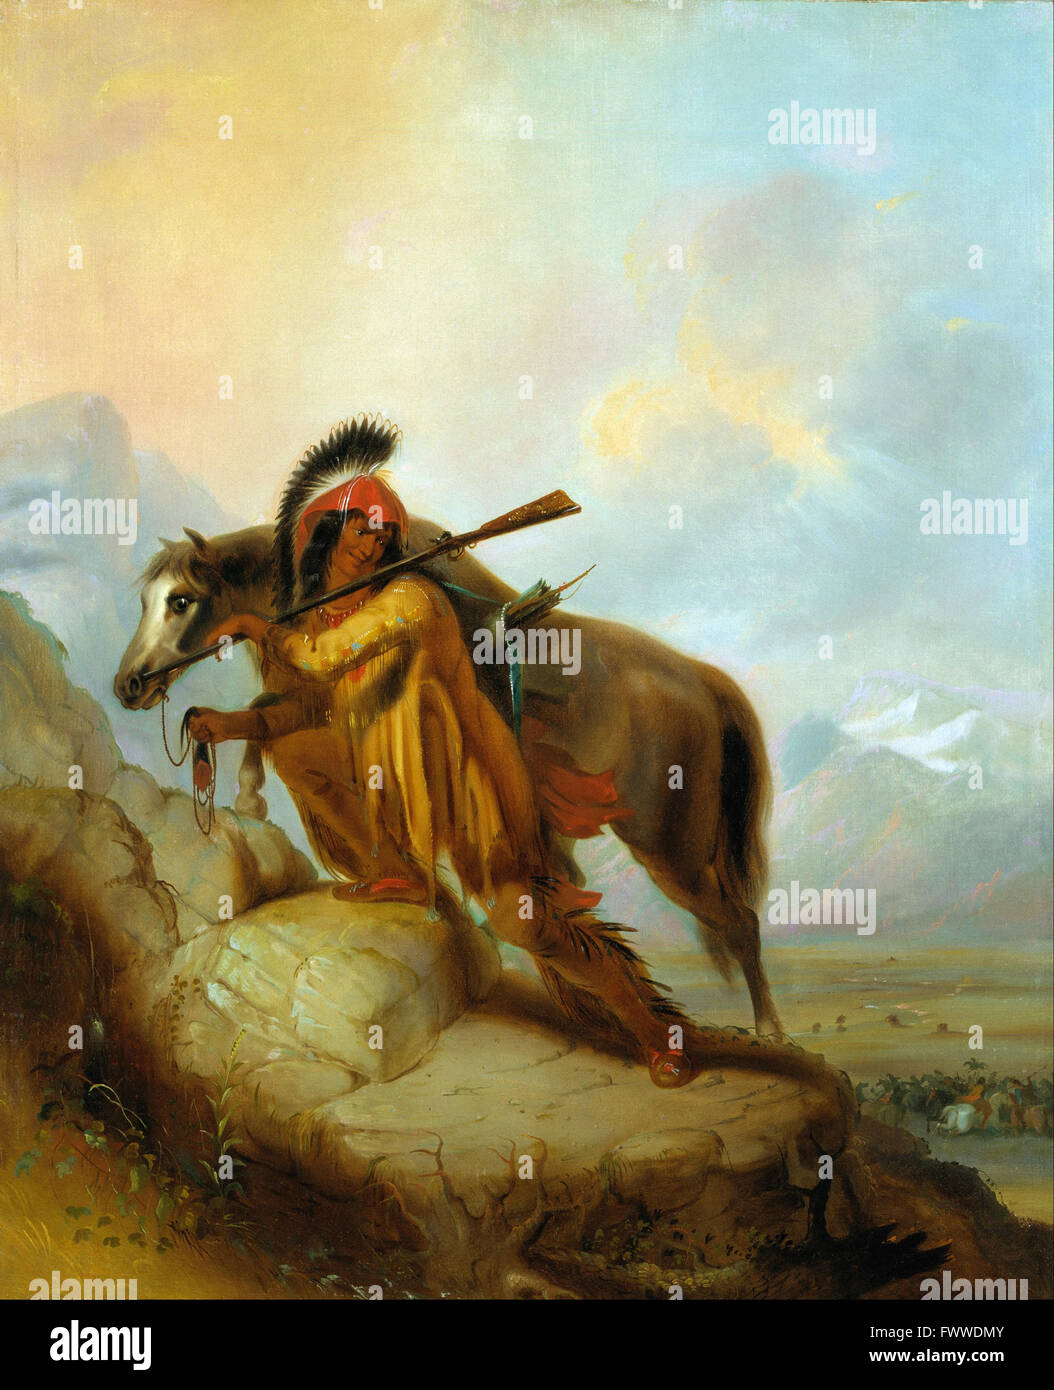 Alfred Jacob Miller - The Scalplock - Denver Art Museum - Stock Image